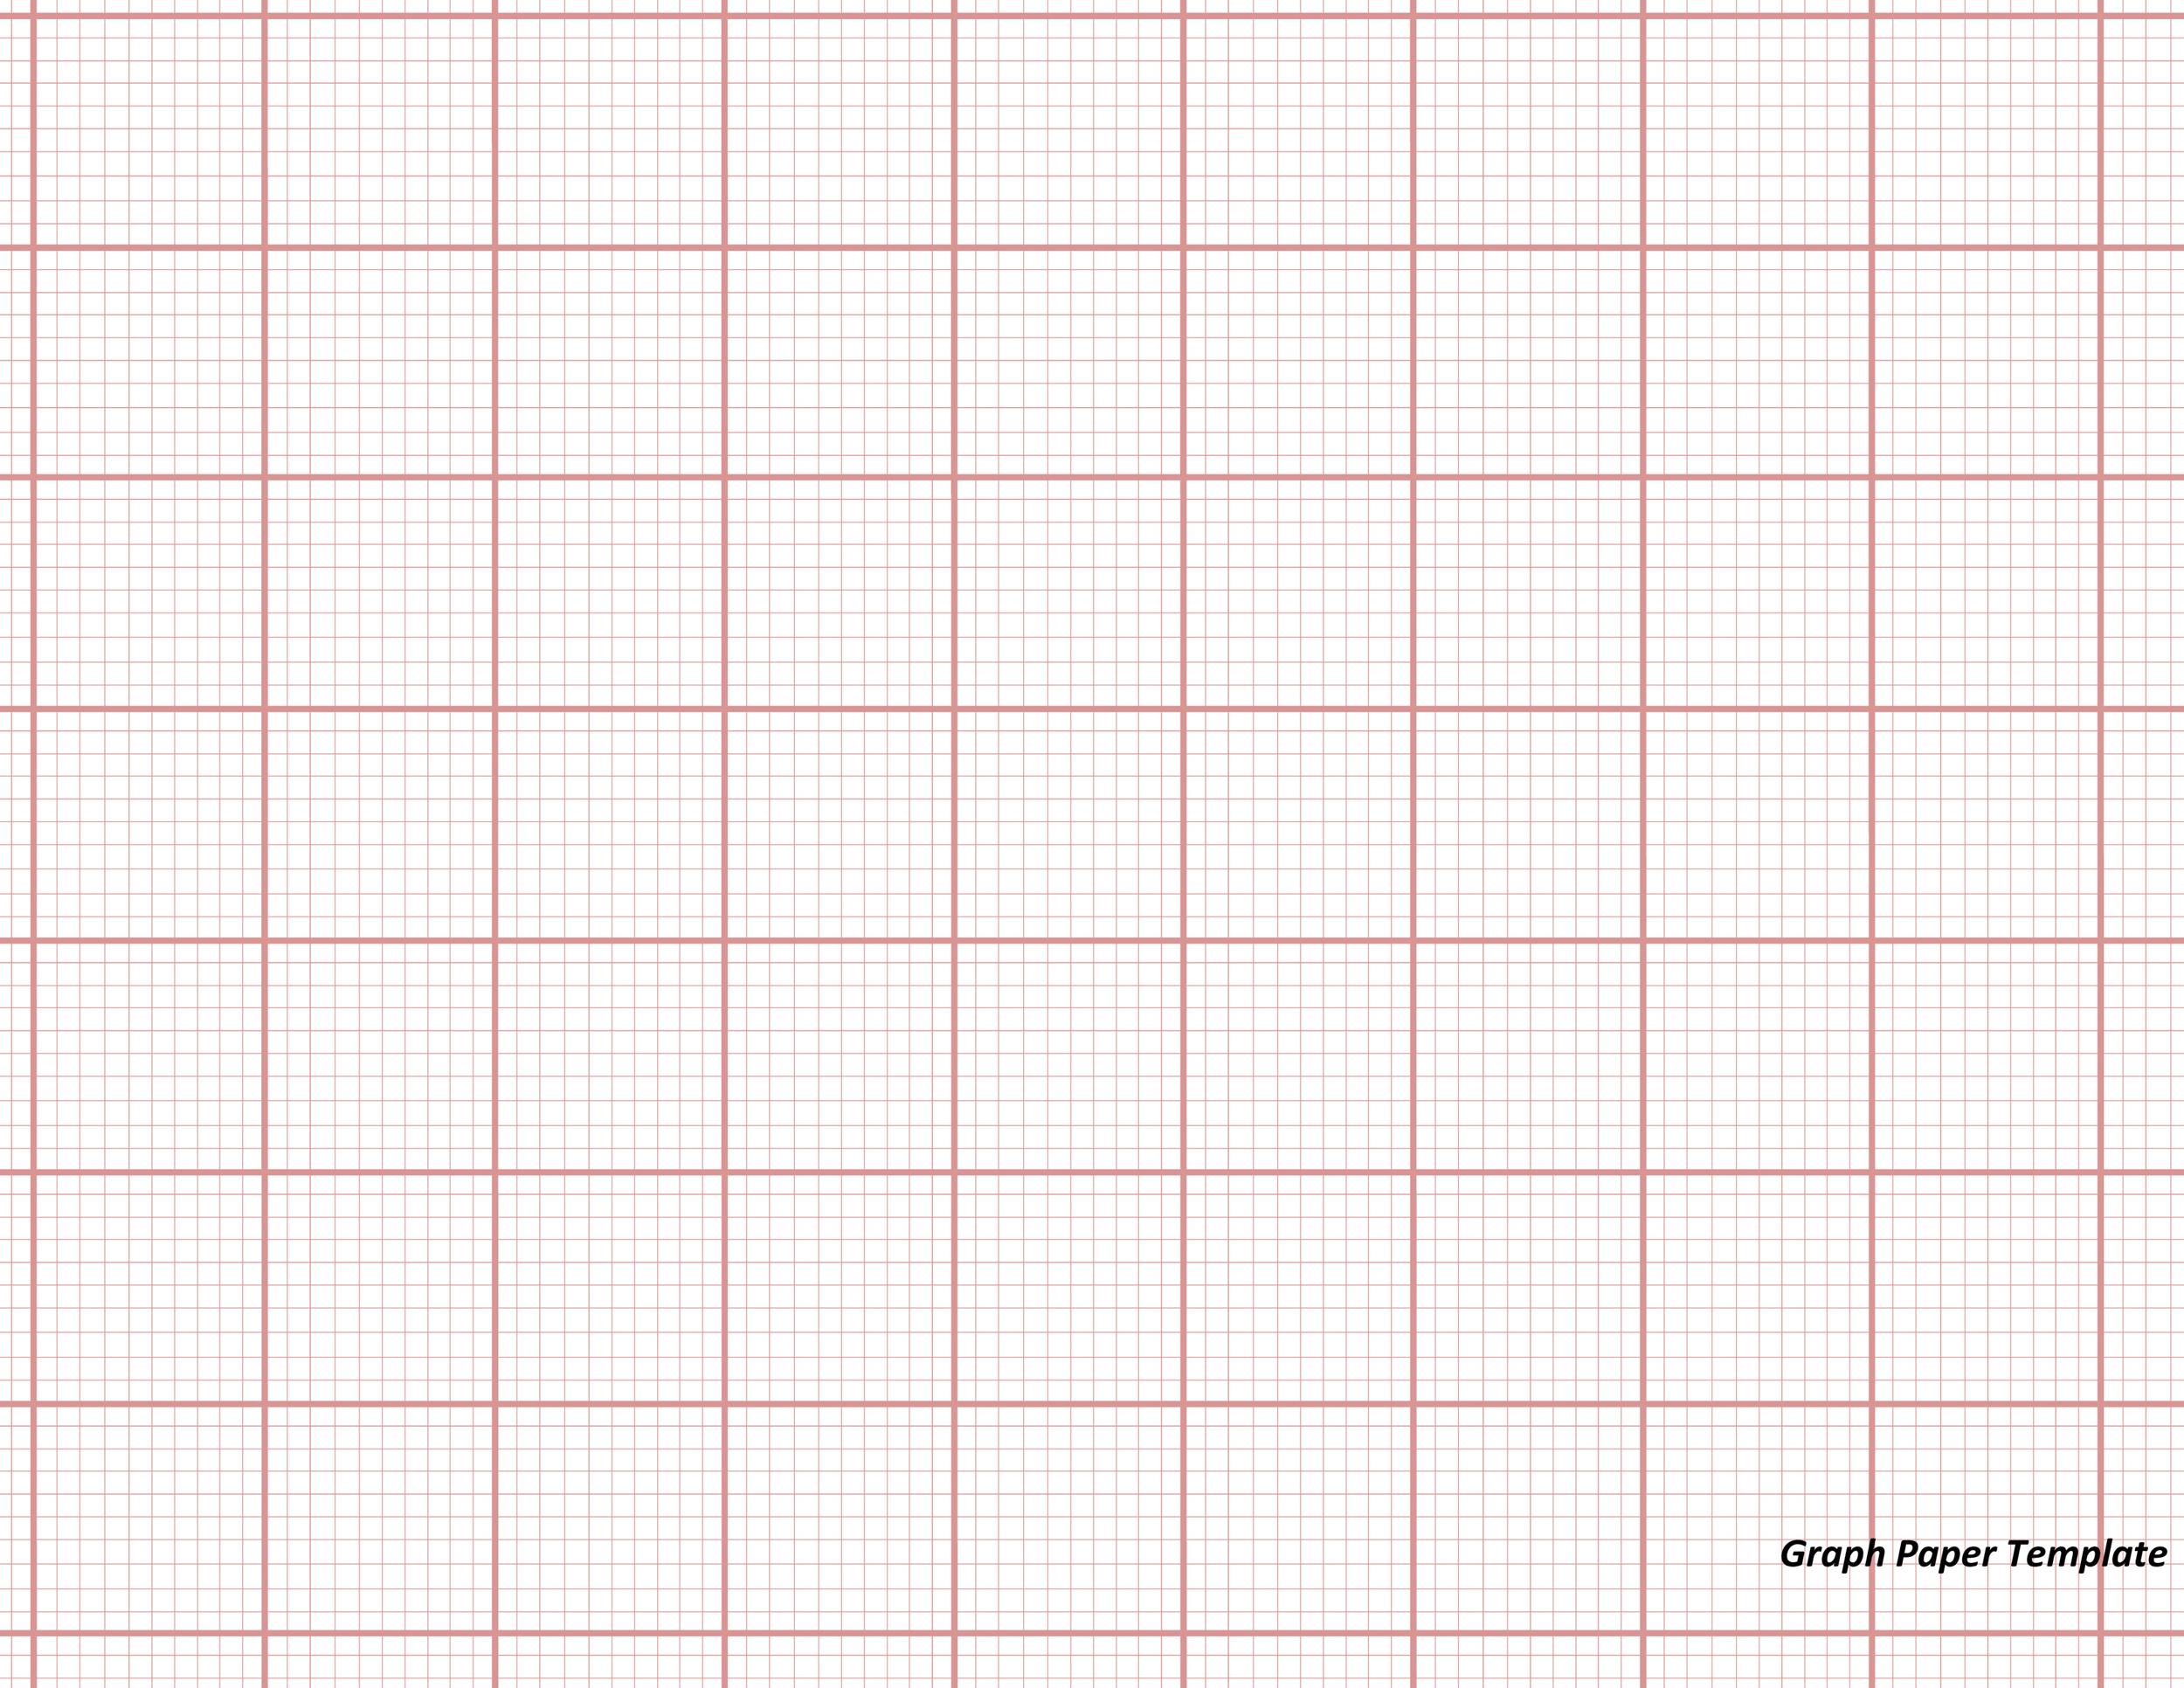 30 Free Printable Graph Paper Templates Word PDF Template Lab – Free Graph Template